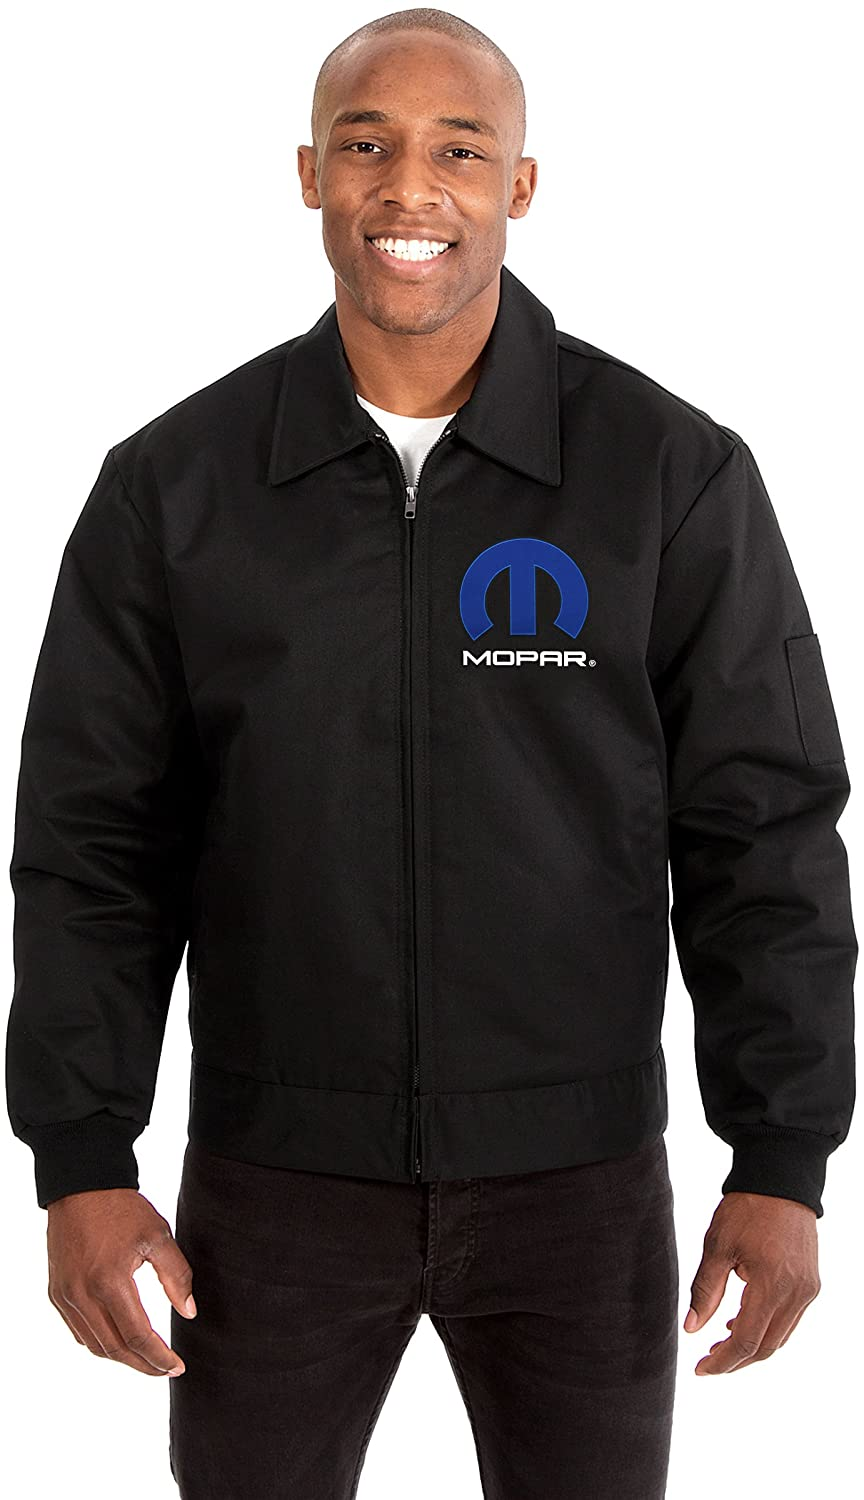 Mopar Mens Mechanics Jacket with Front /& Back Emblems Available in Black /& Gray